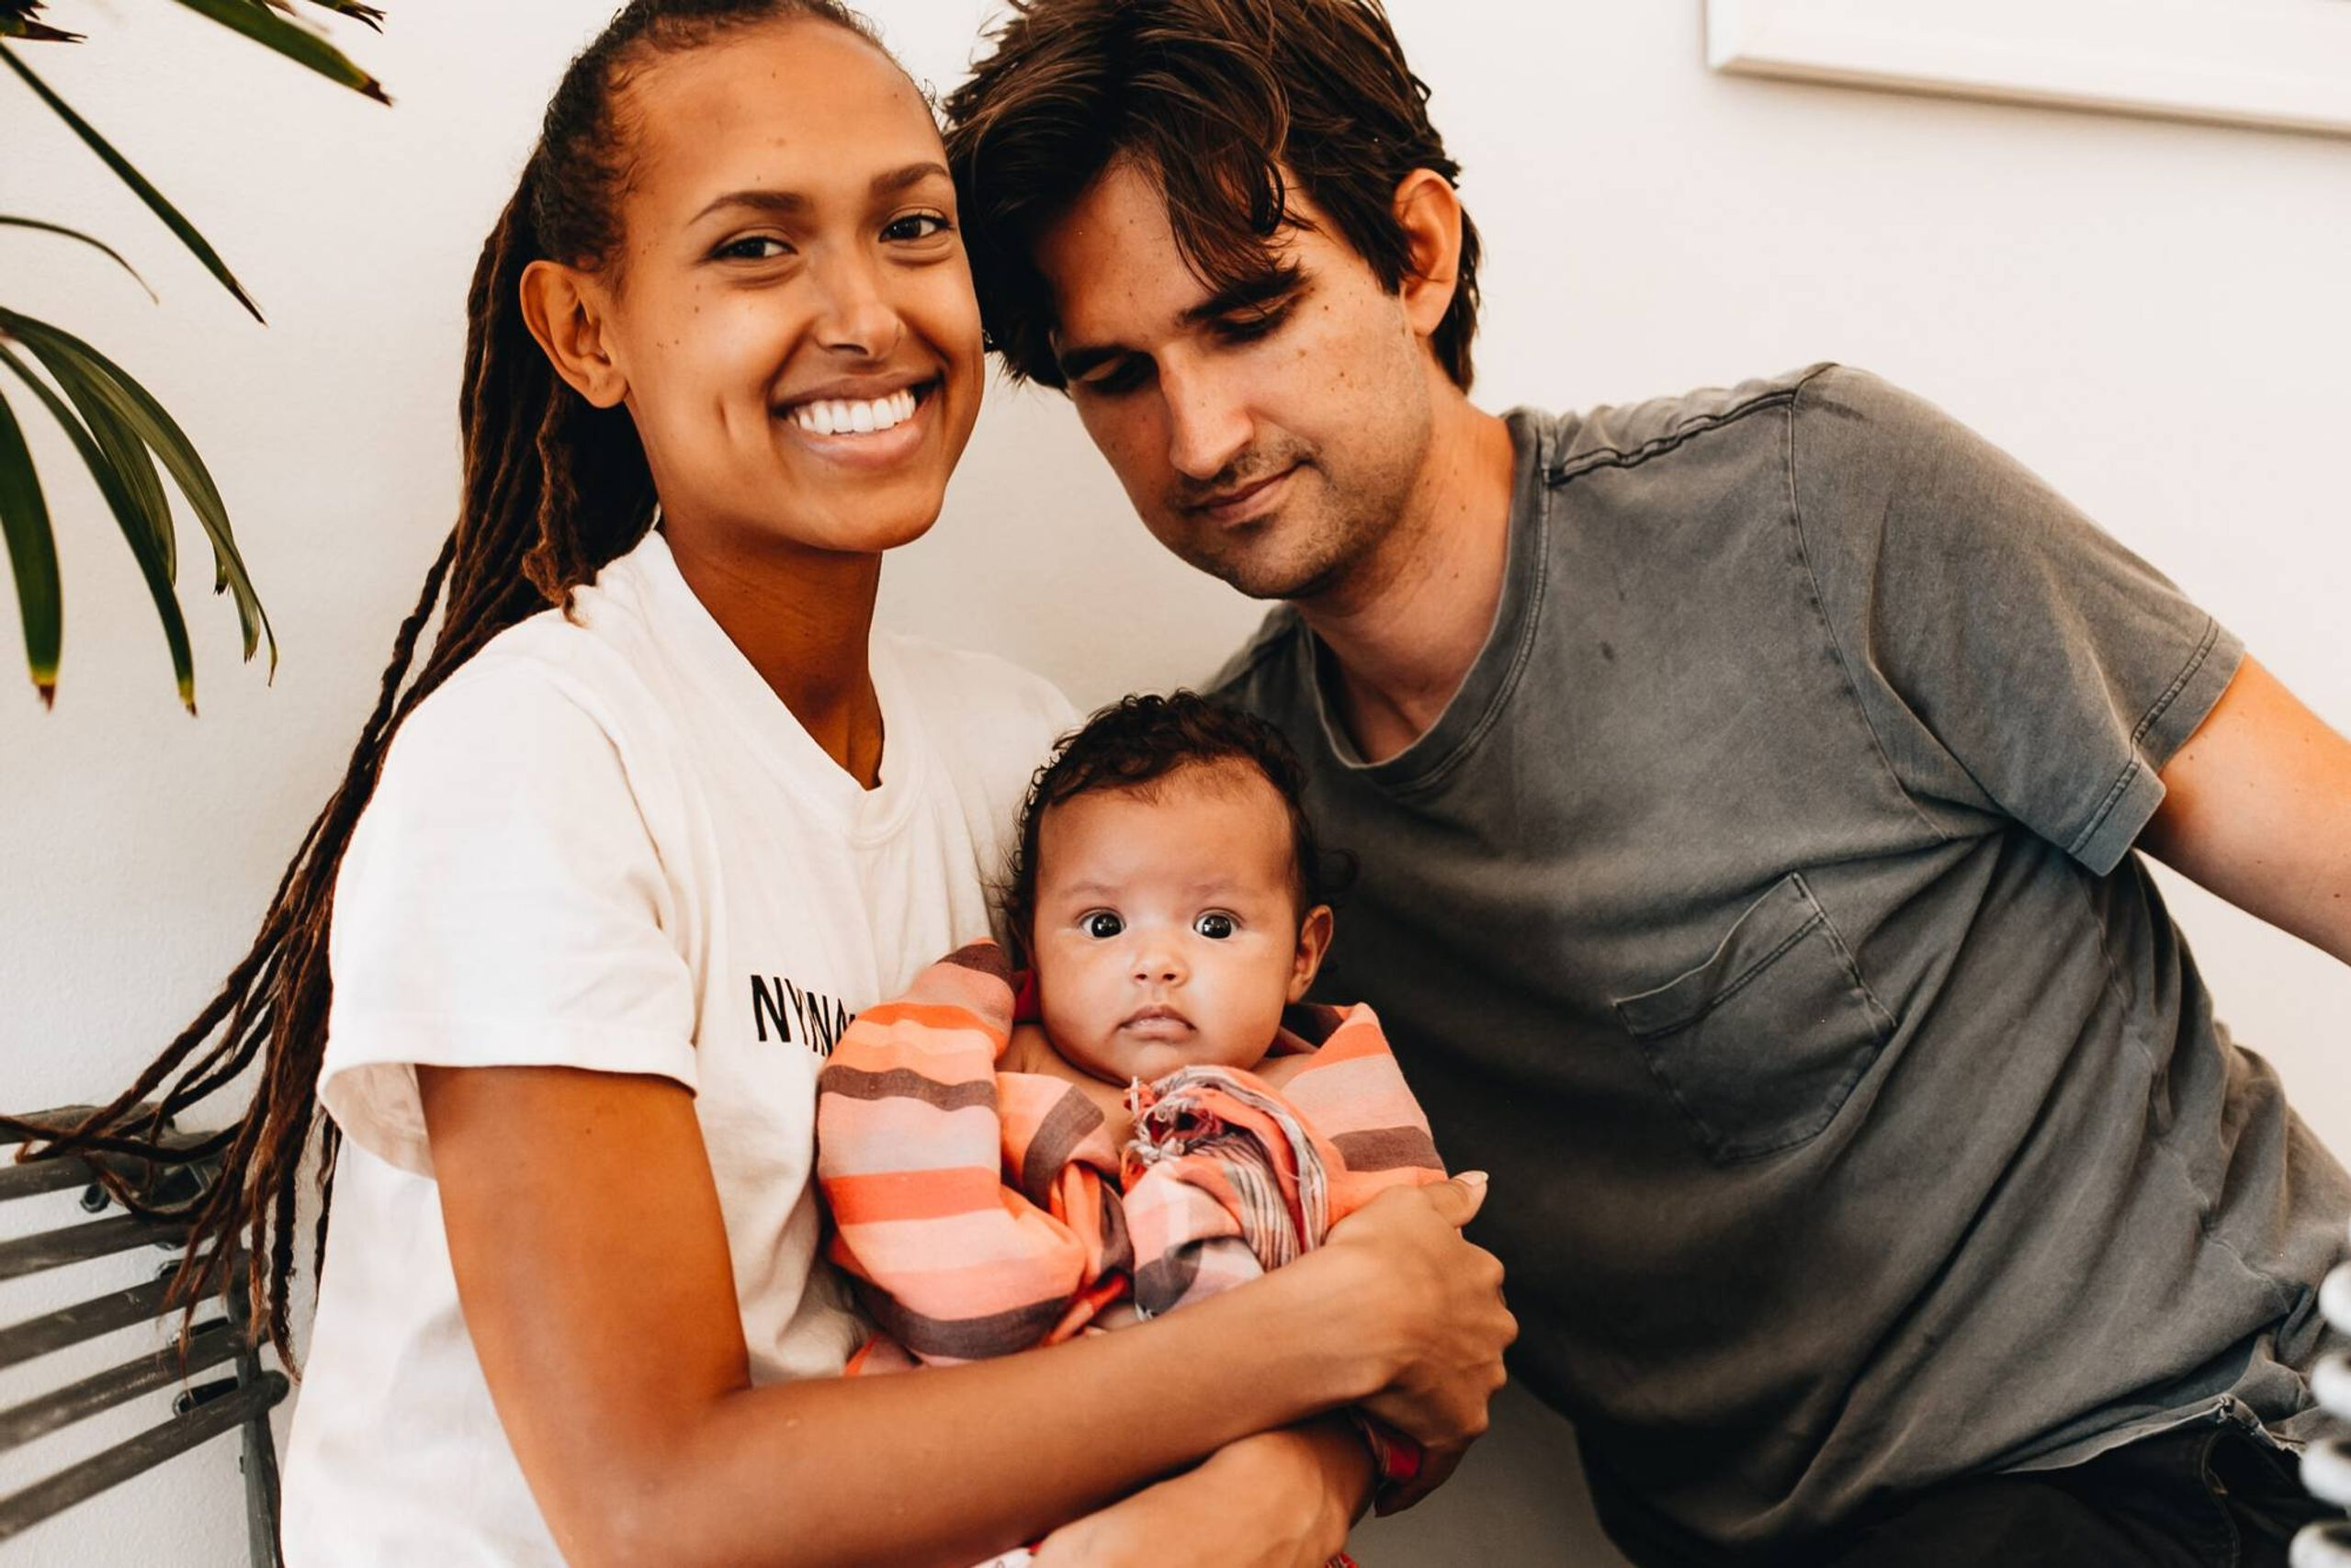 A young interracial couple holds a baby. REWIRE PBS Our Future Love interracial family